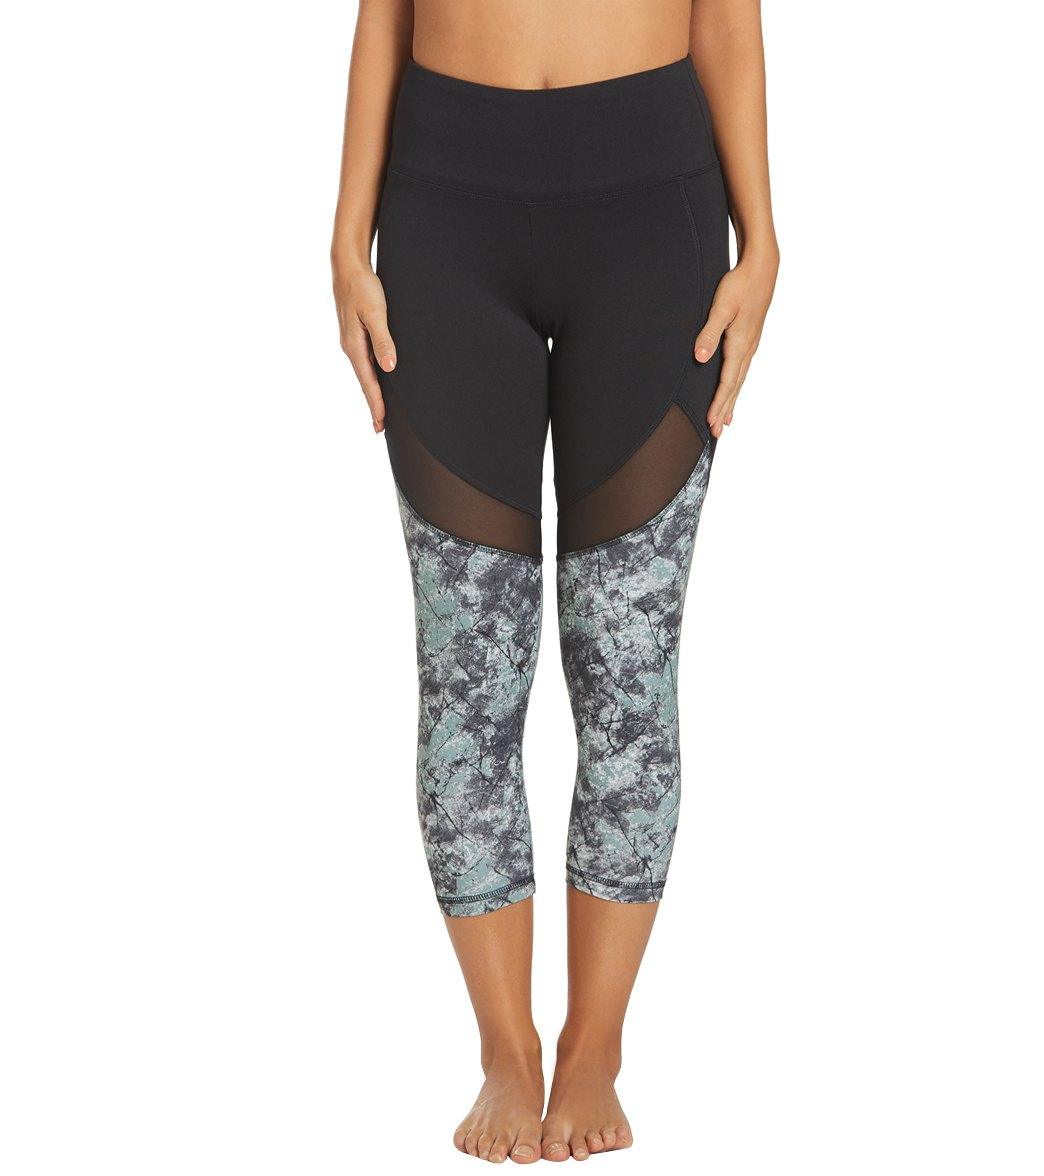 Balance Collection Marley 7/8 Yoga Leggings - Chinois Opality Cotton